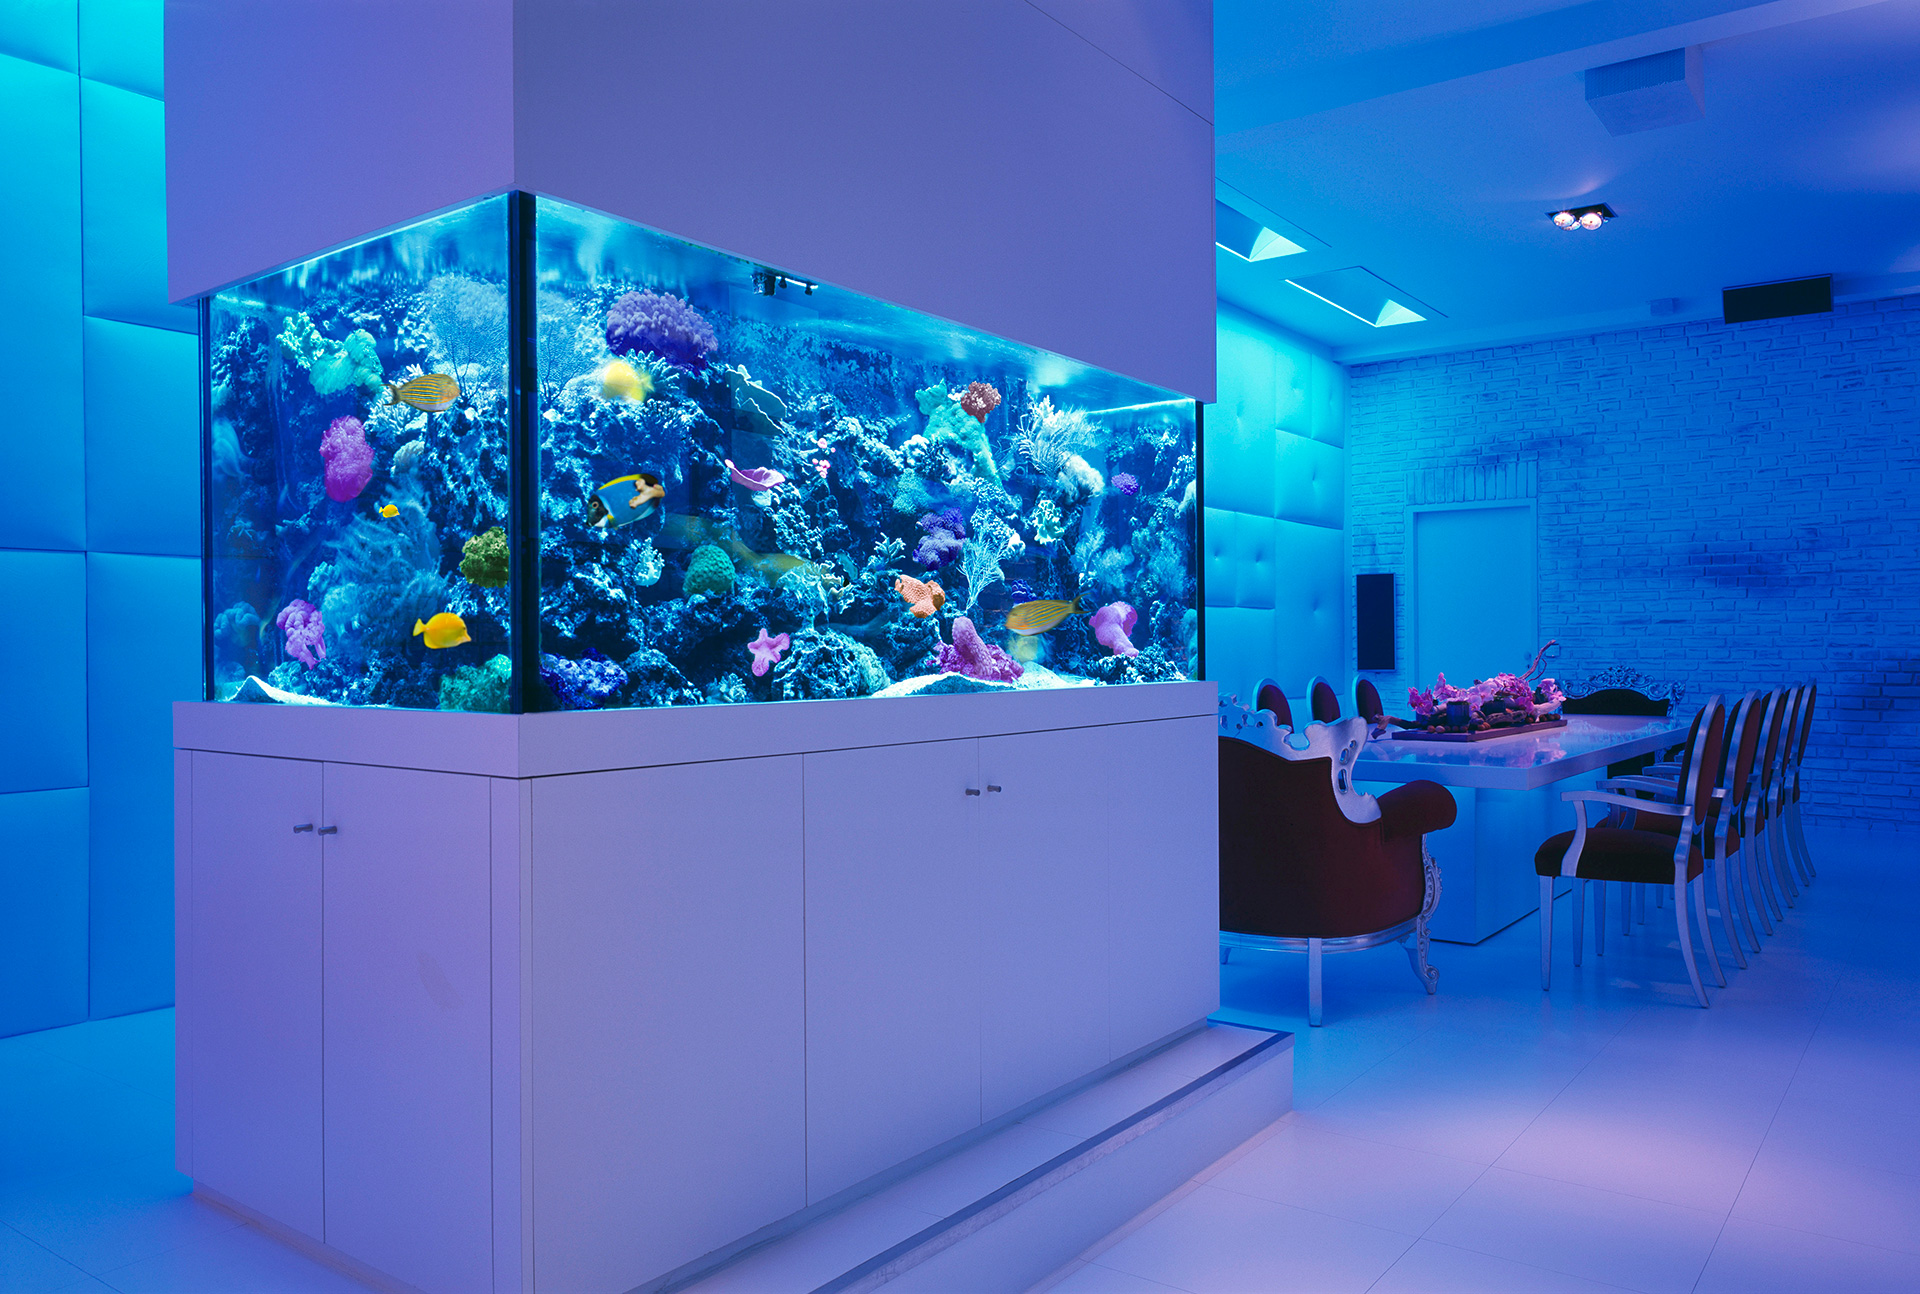 Fish aquarium bed frame - Room 3 Decorating Ideas With Aquarium